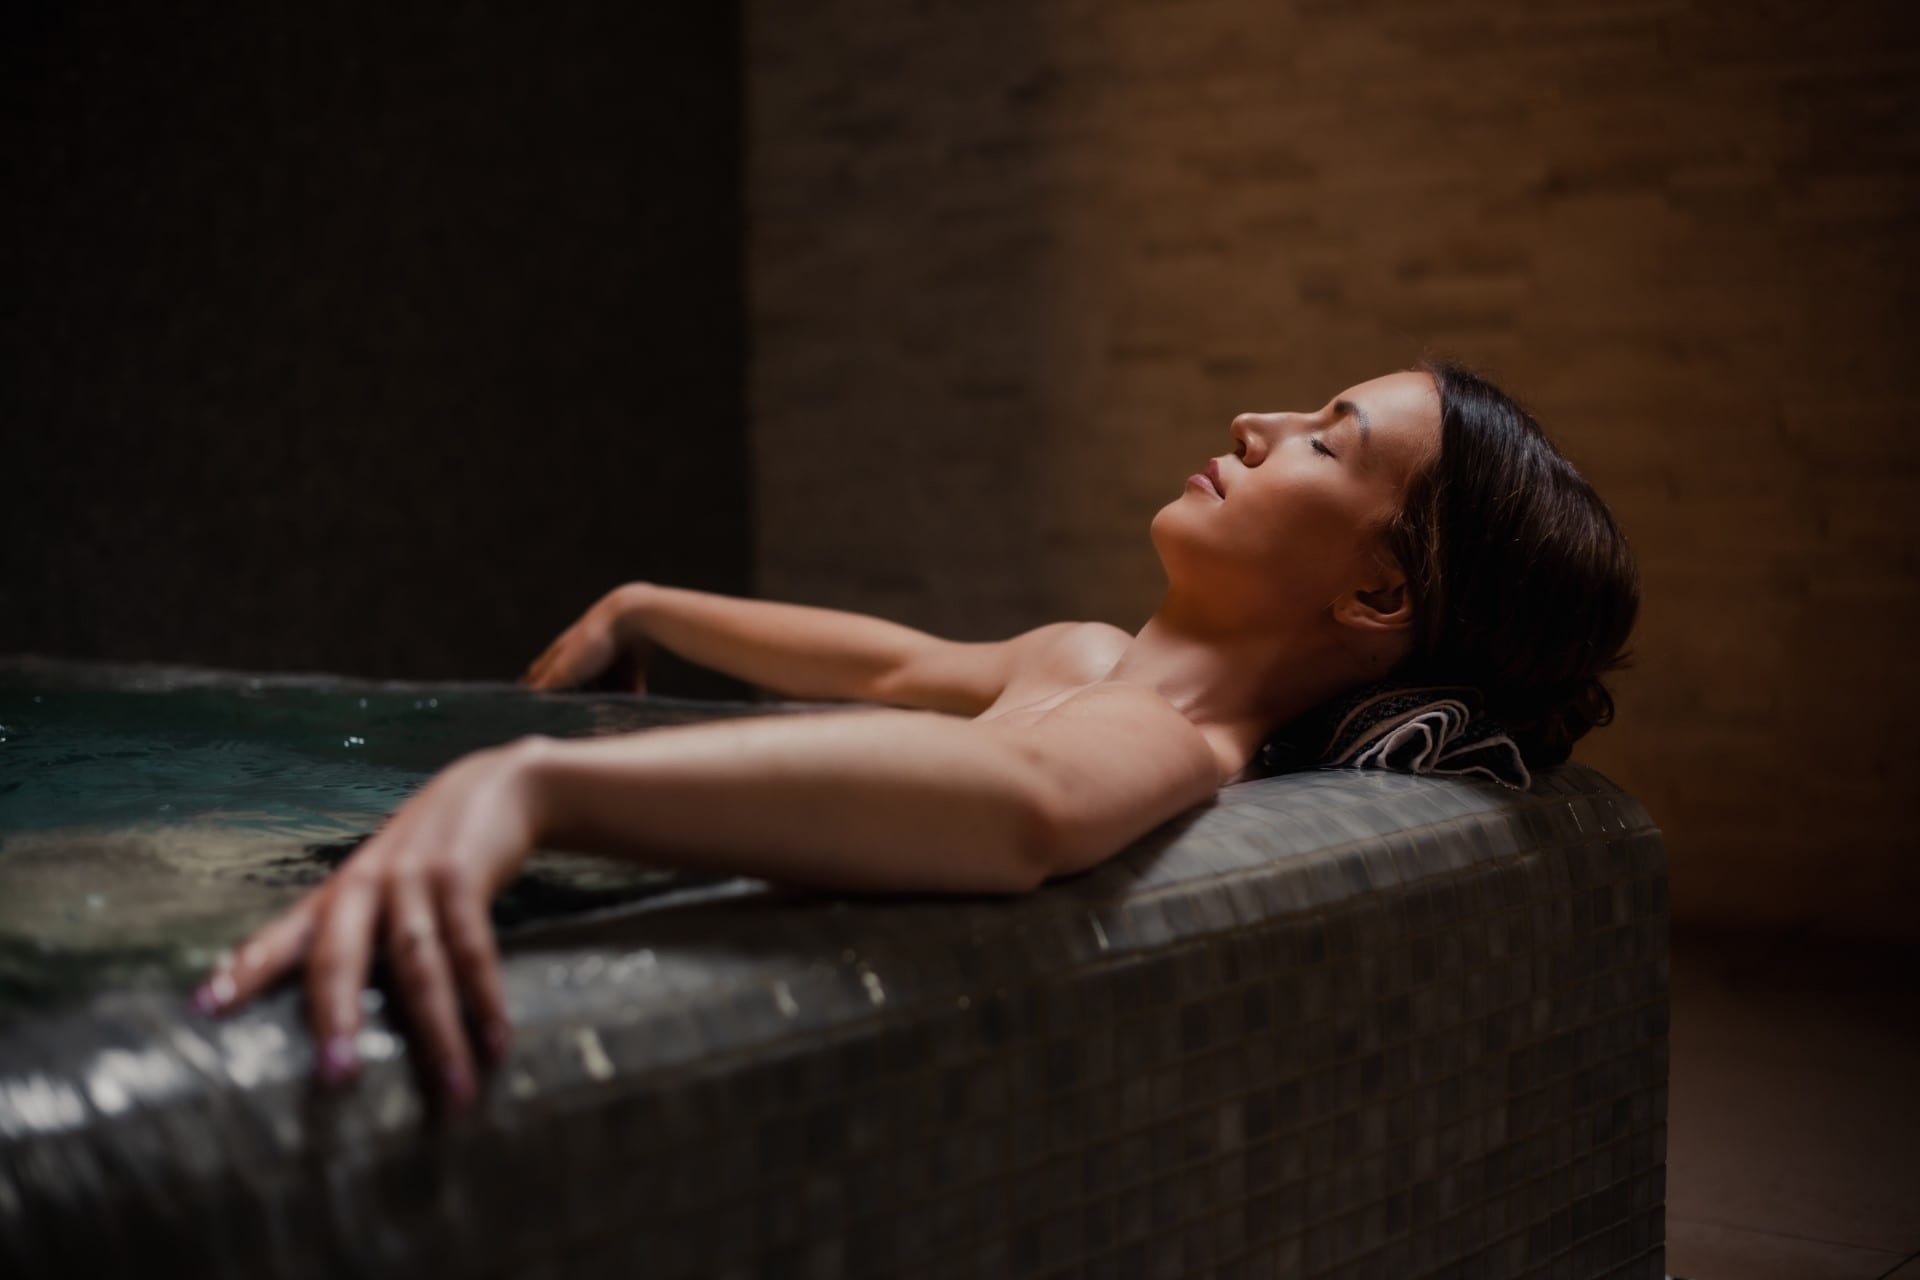 lady relaxing in a hot tub